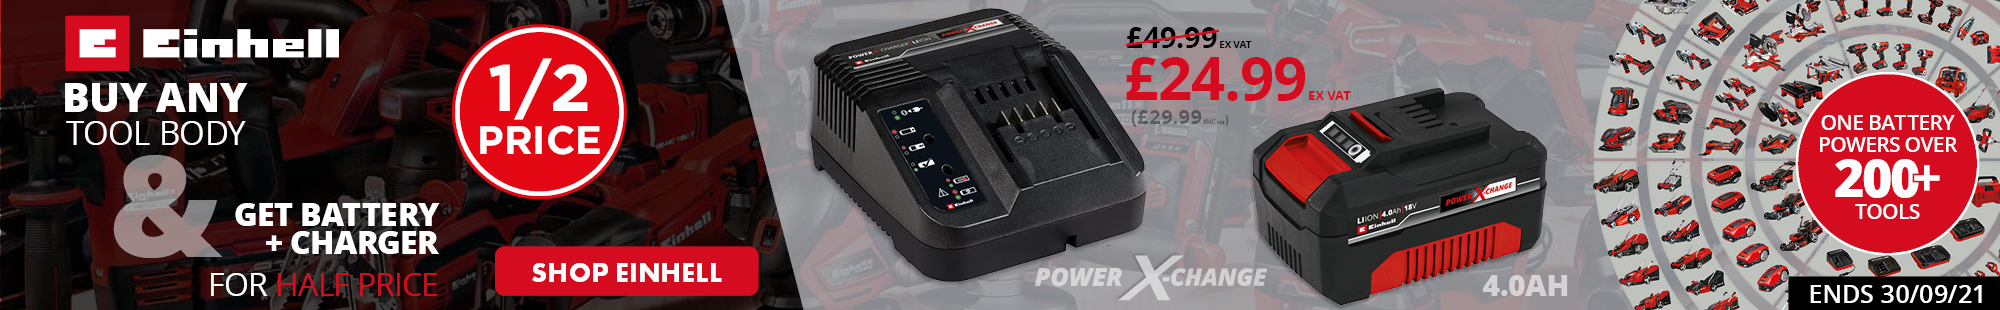 Einhell Battery & Charger Pack